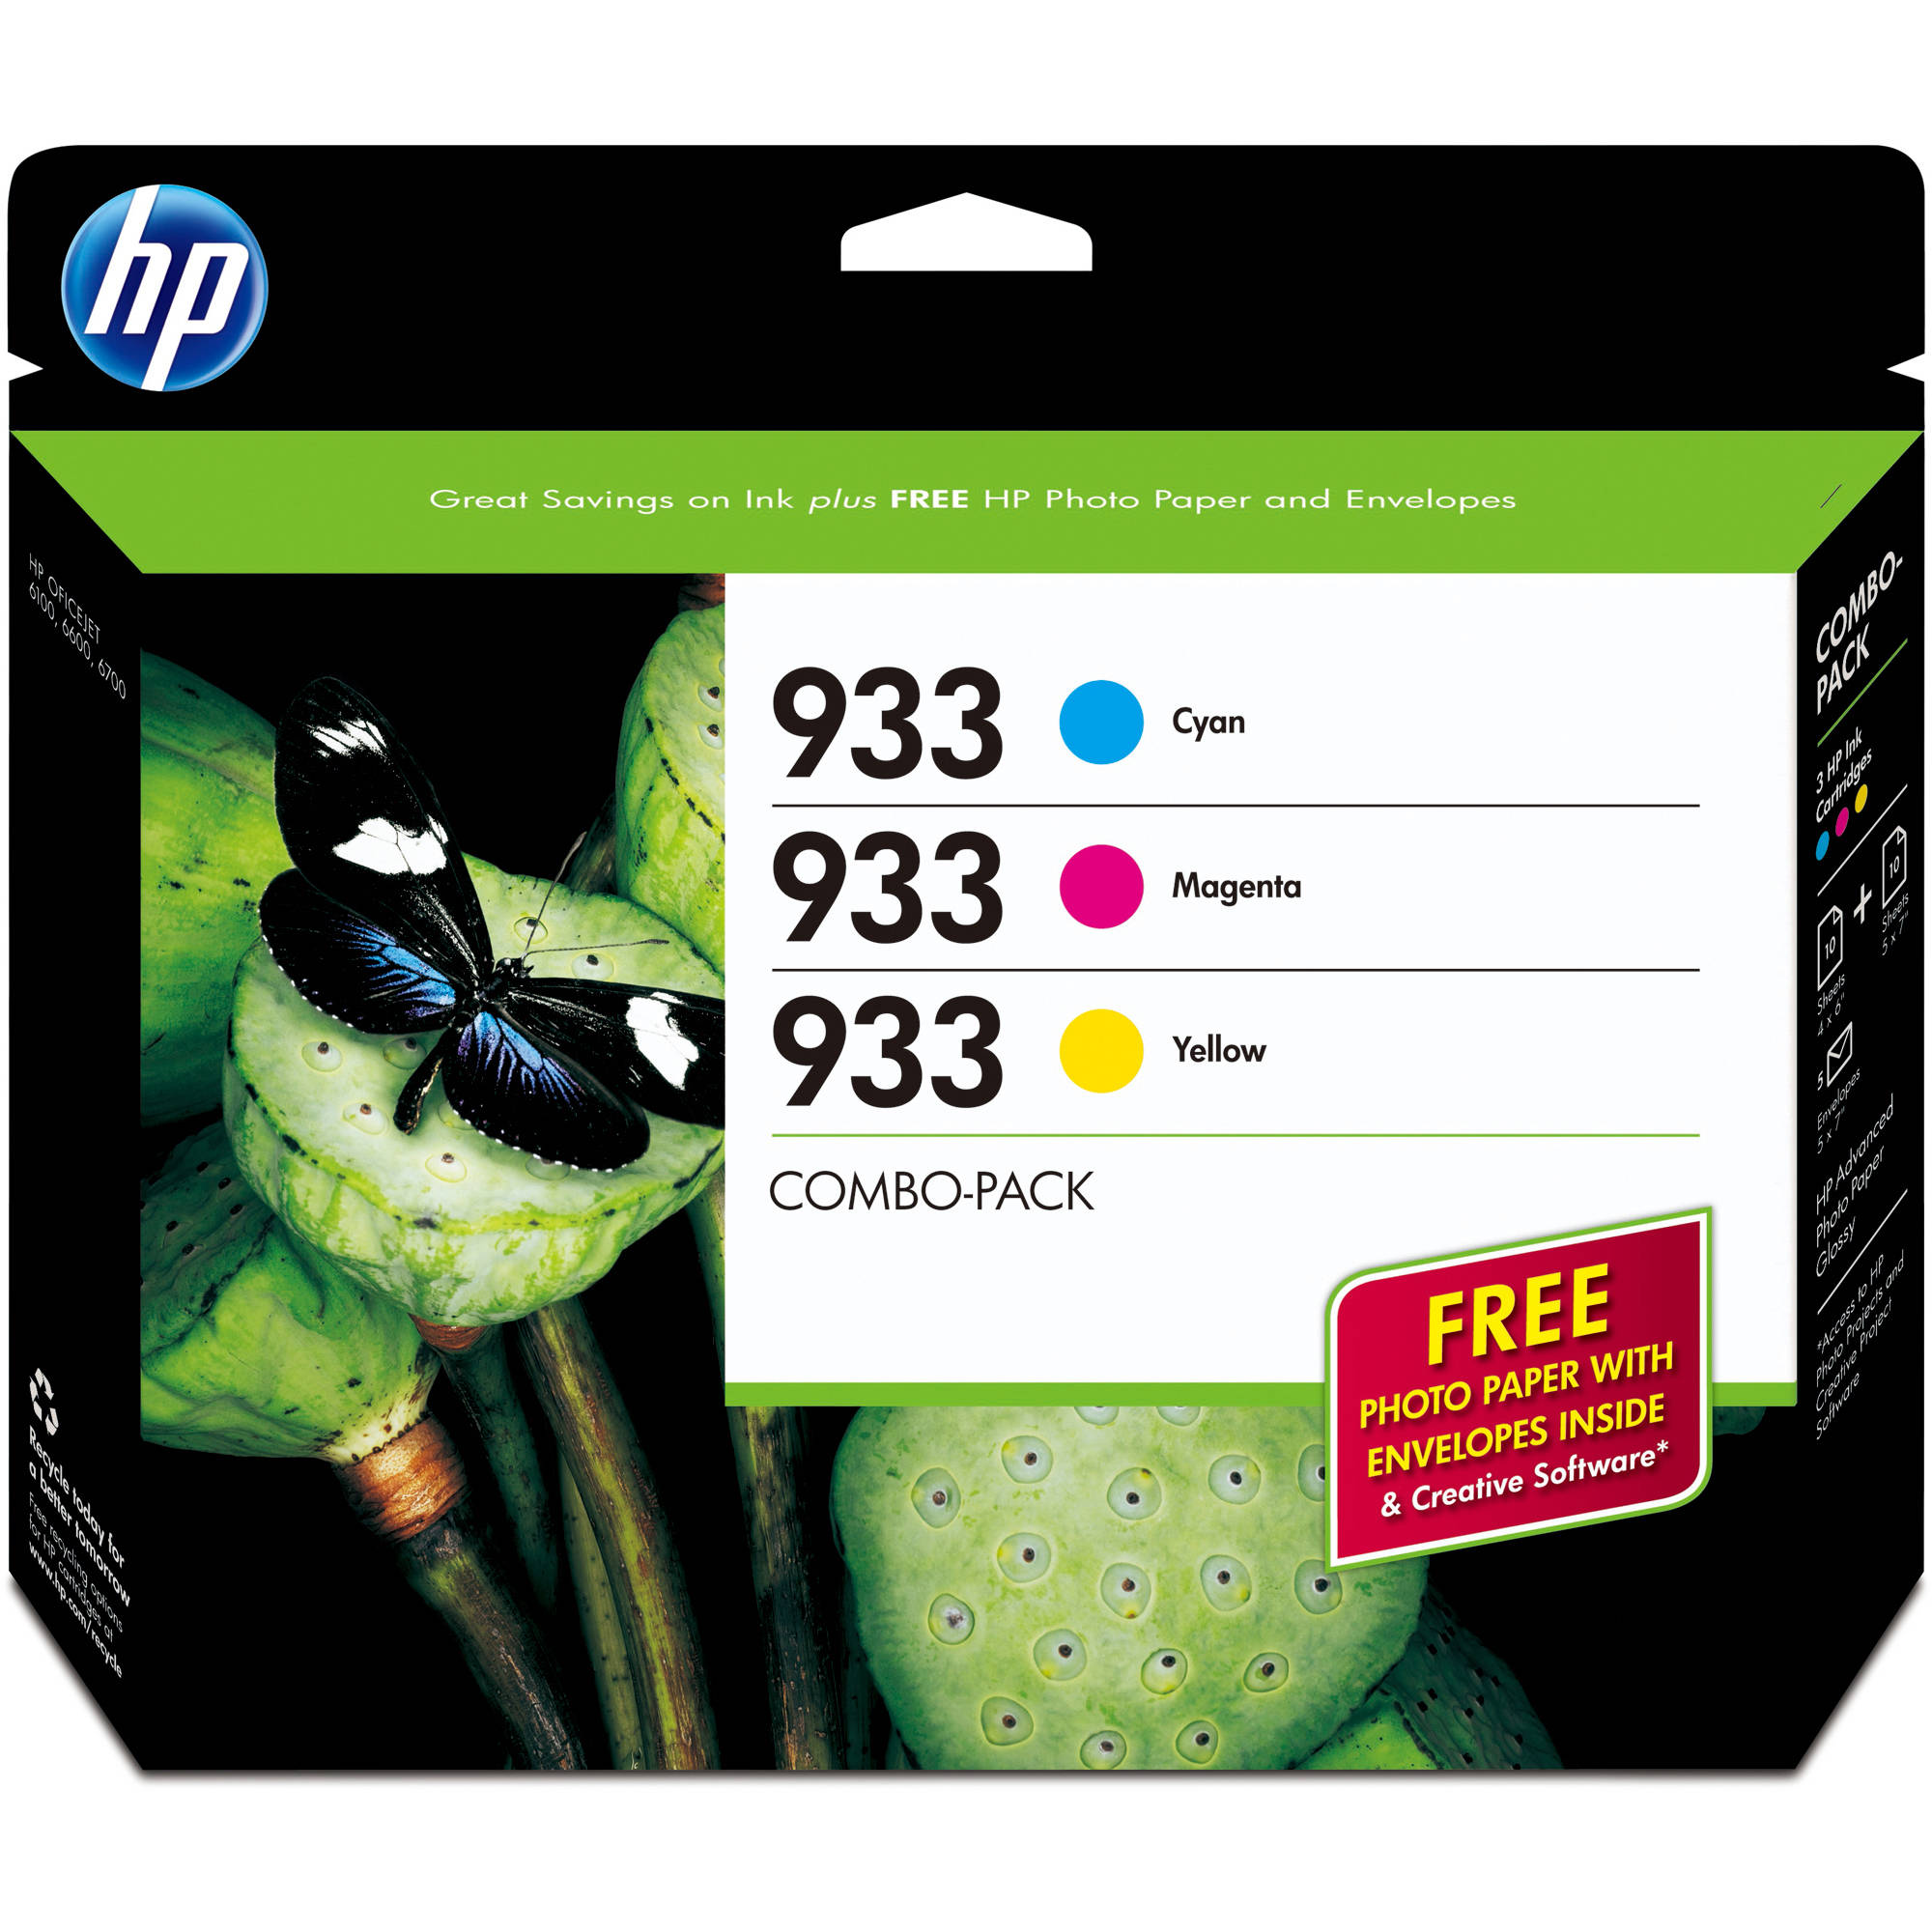 HP 933 Cyan/Magenta/Yellow Original Ink Cartridges w/Photo Paper, 3 pack (B3B32FN)